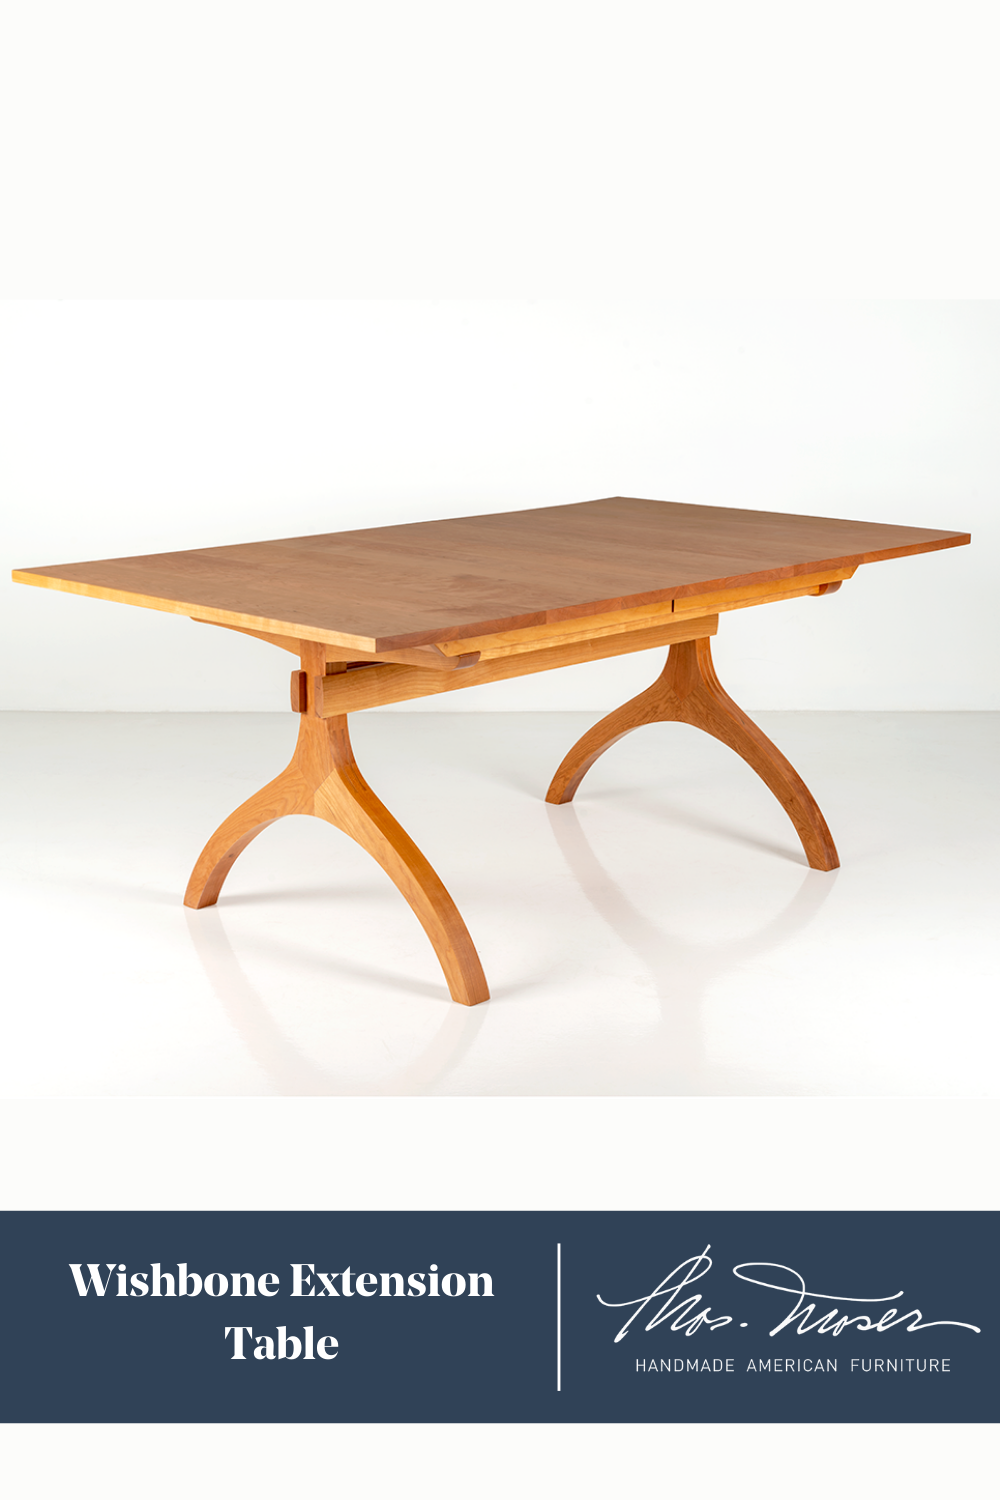 The Wishbone Extension Table easily glides open extending for more seating. When not in use, the tables' two leaf extensions self-store beneath the table top. Seats six when closed, ten when fully extended.  #extensiontable #woodentable #diningtable #familydiningroom #diningroom #furniture #table